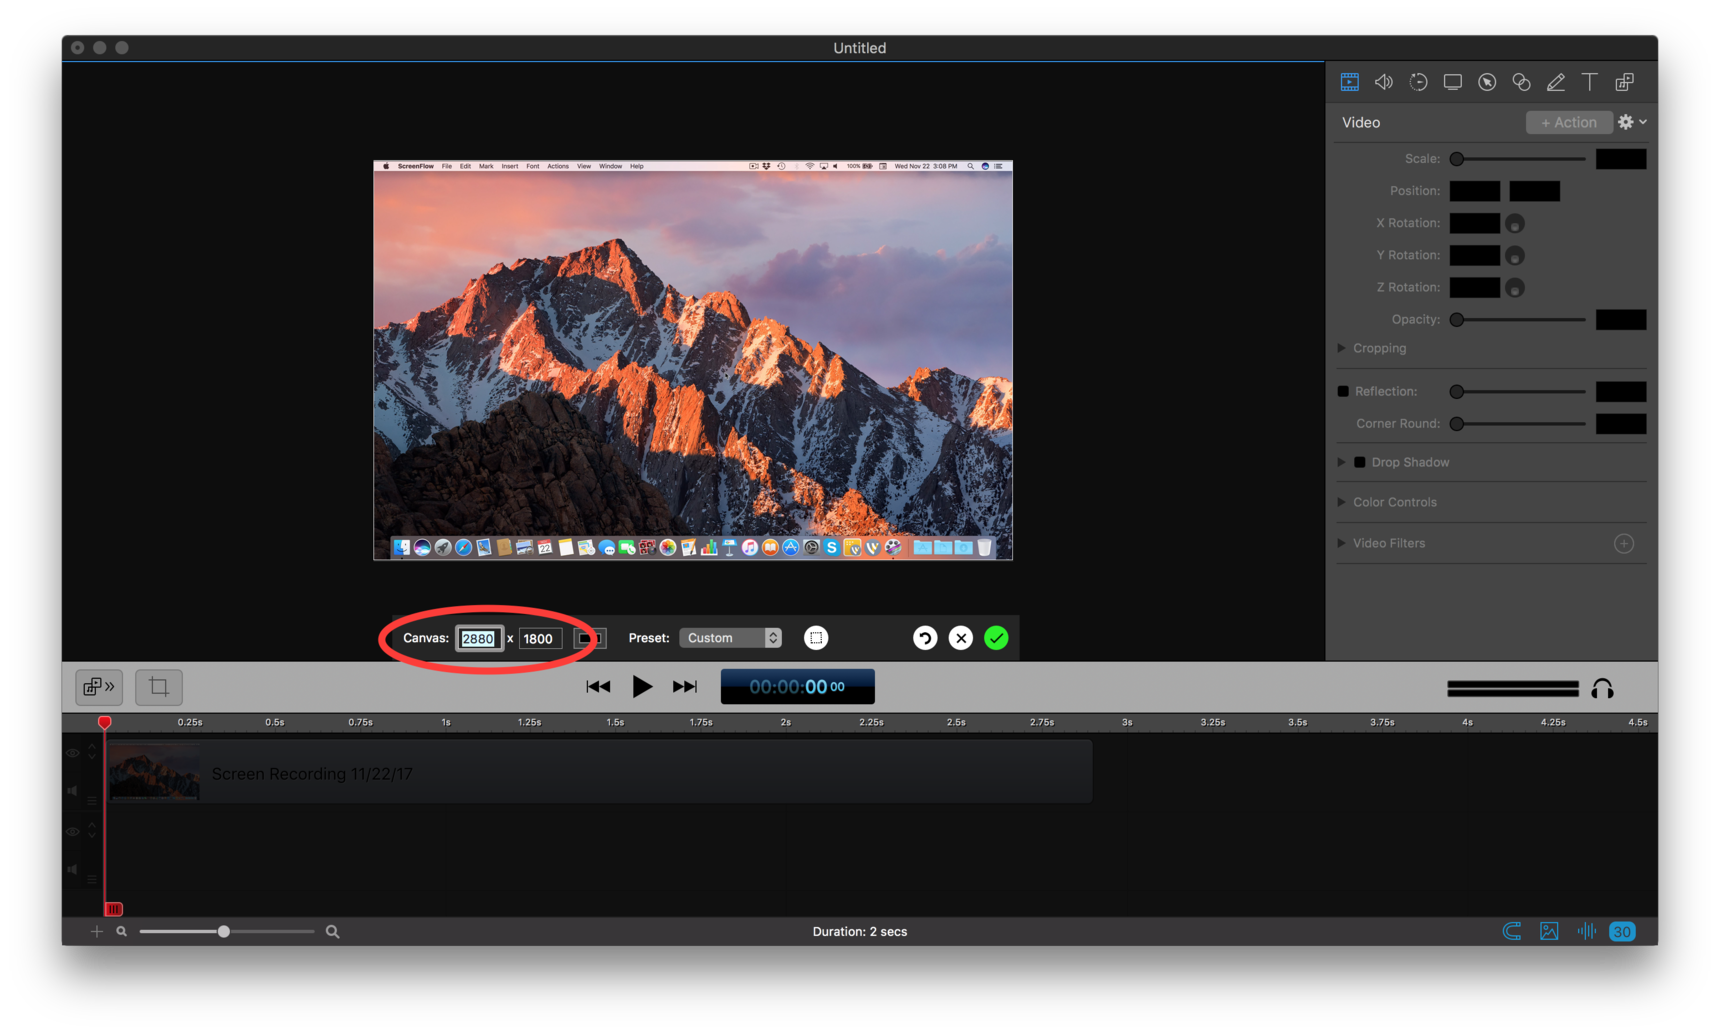 How to record full screen from Mac? - ScreenFlow Q&A